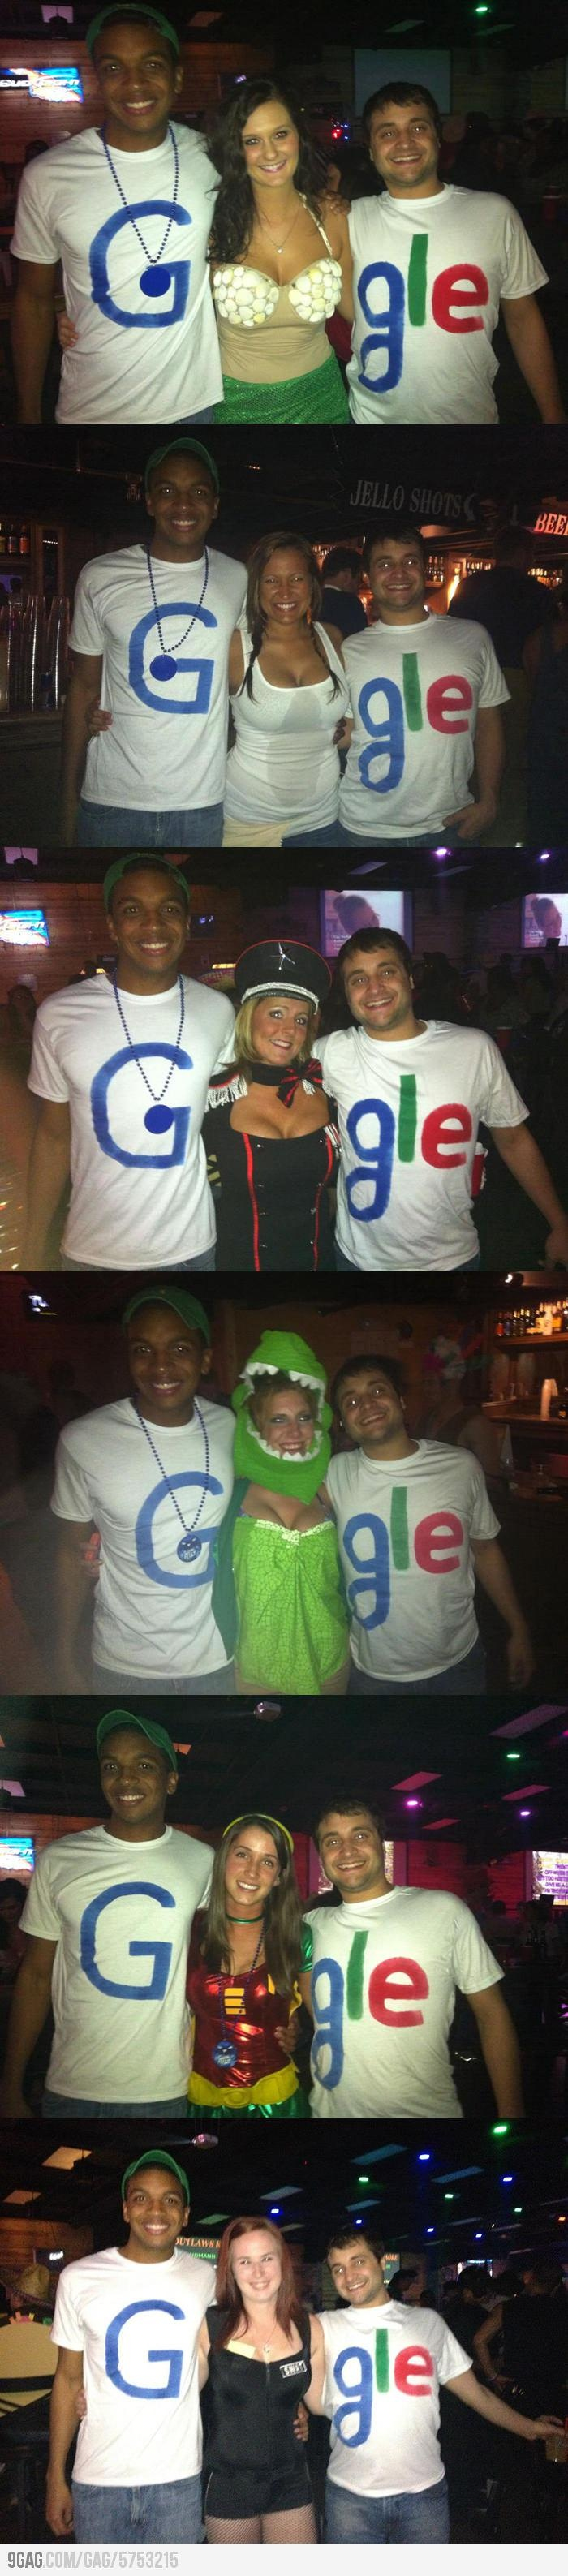 Guys from (or dress like) Google are pretty smart.